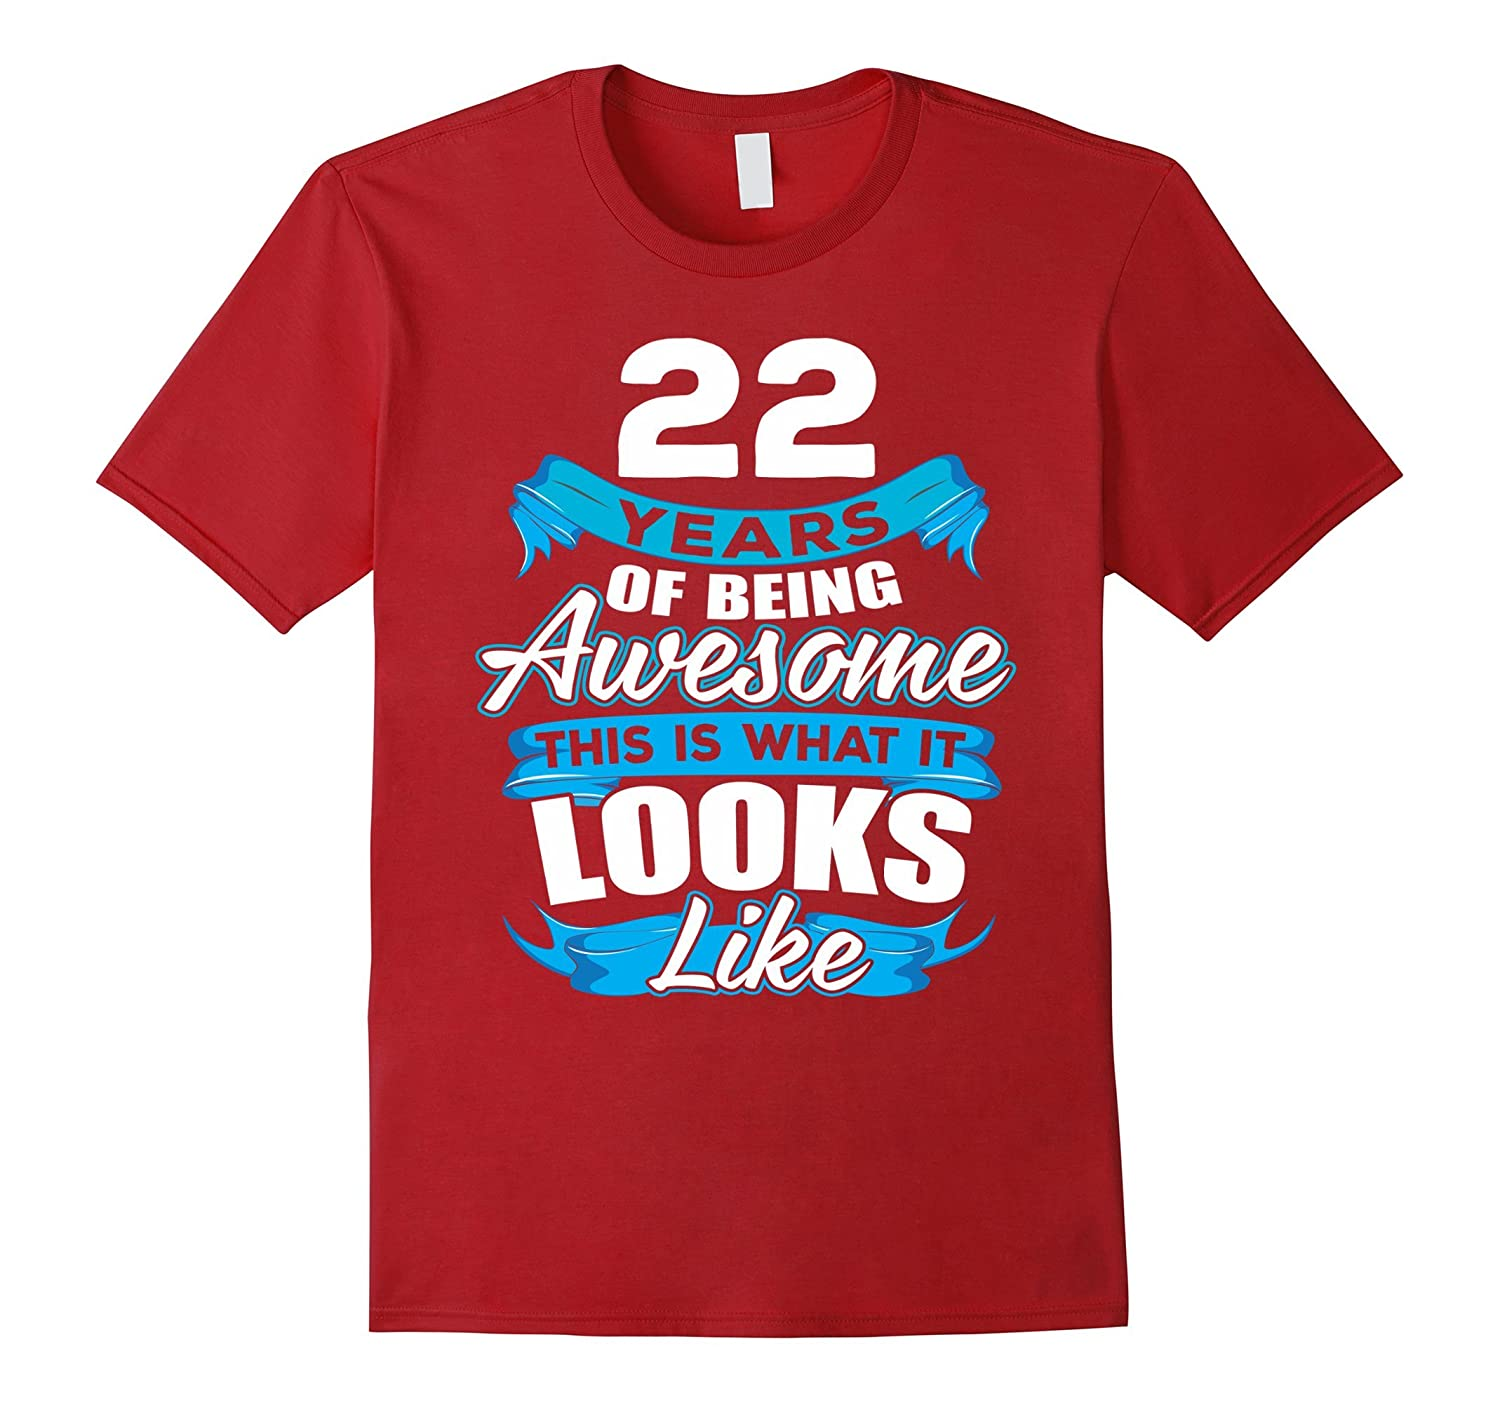 22 Years Old Being Awesome Shirt